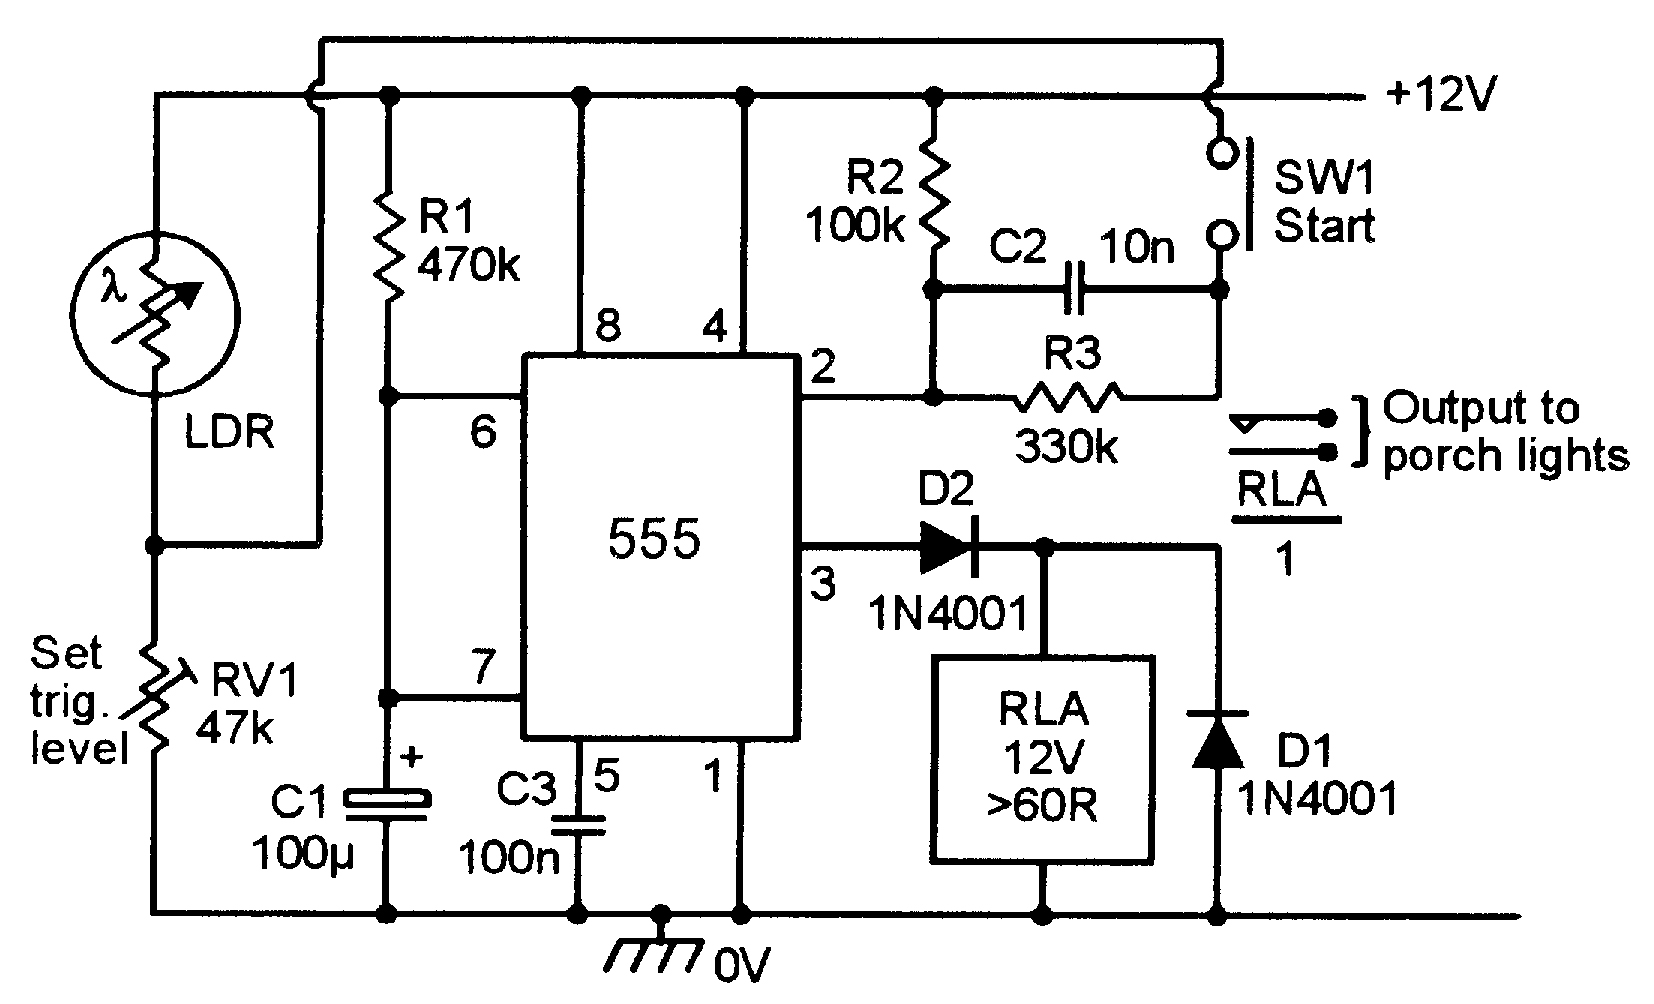 555 Monostable Circuits Nuts Volts Magazine Auto Light Switch Wiring Diagram The Action Here Is Such That If Vehicle Has Its Lights Off They Can Be Turned On For A Pre Set 50s Period By Briefly Pressing Start